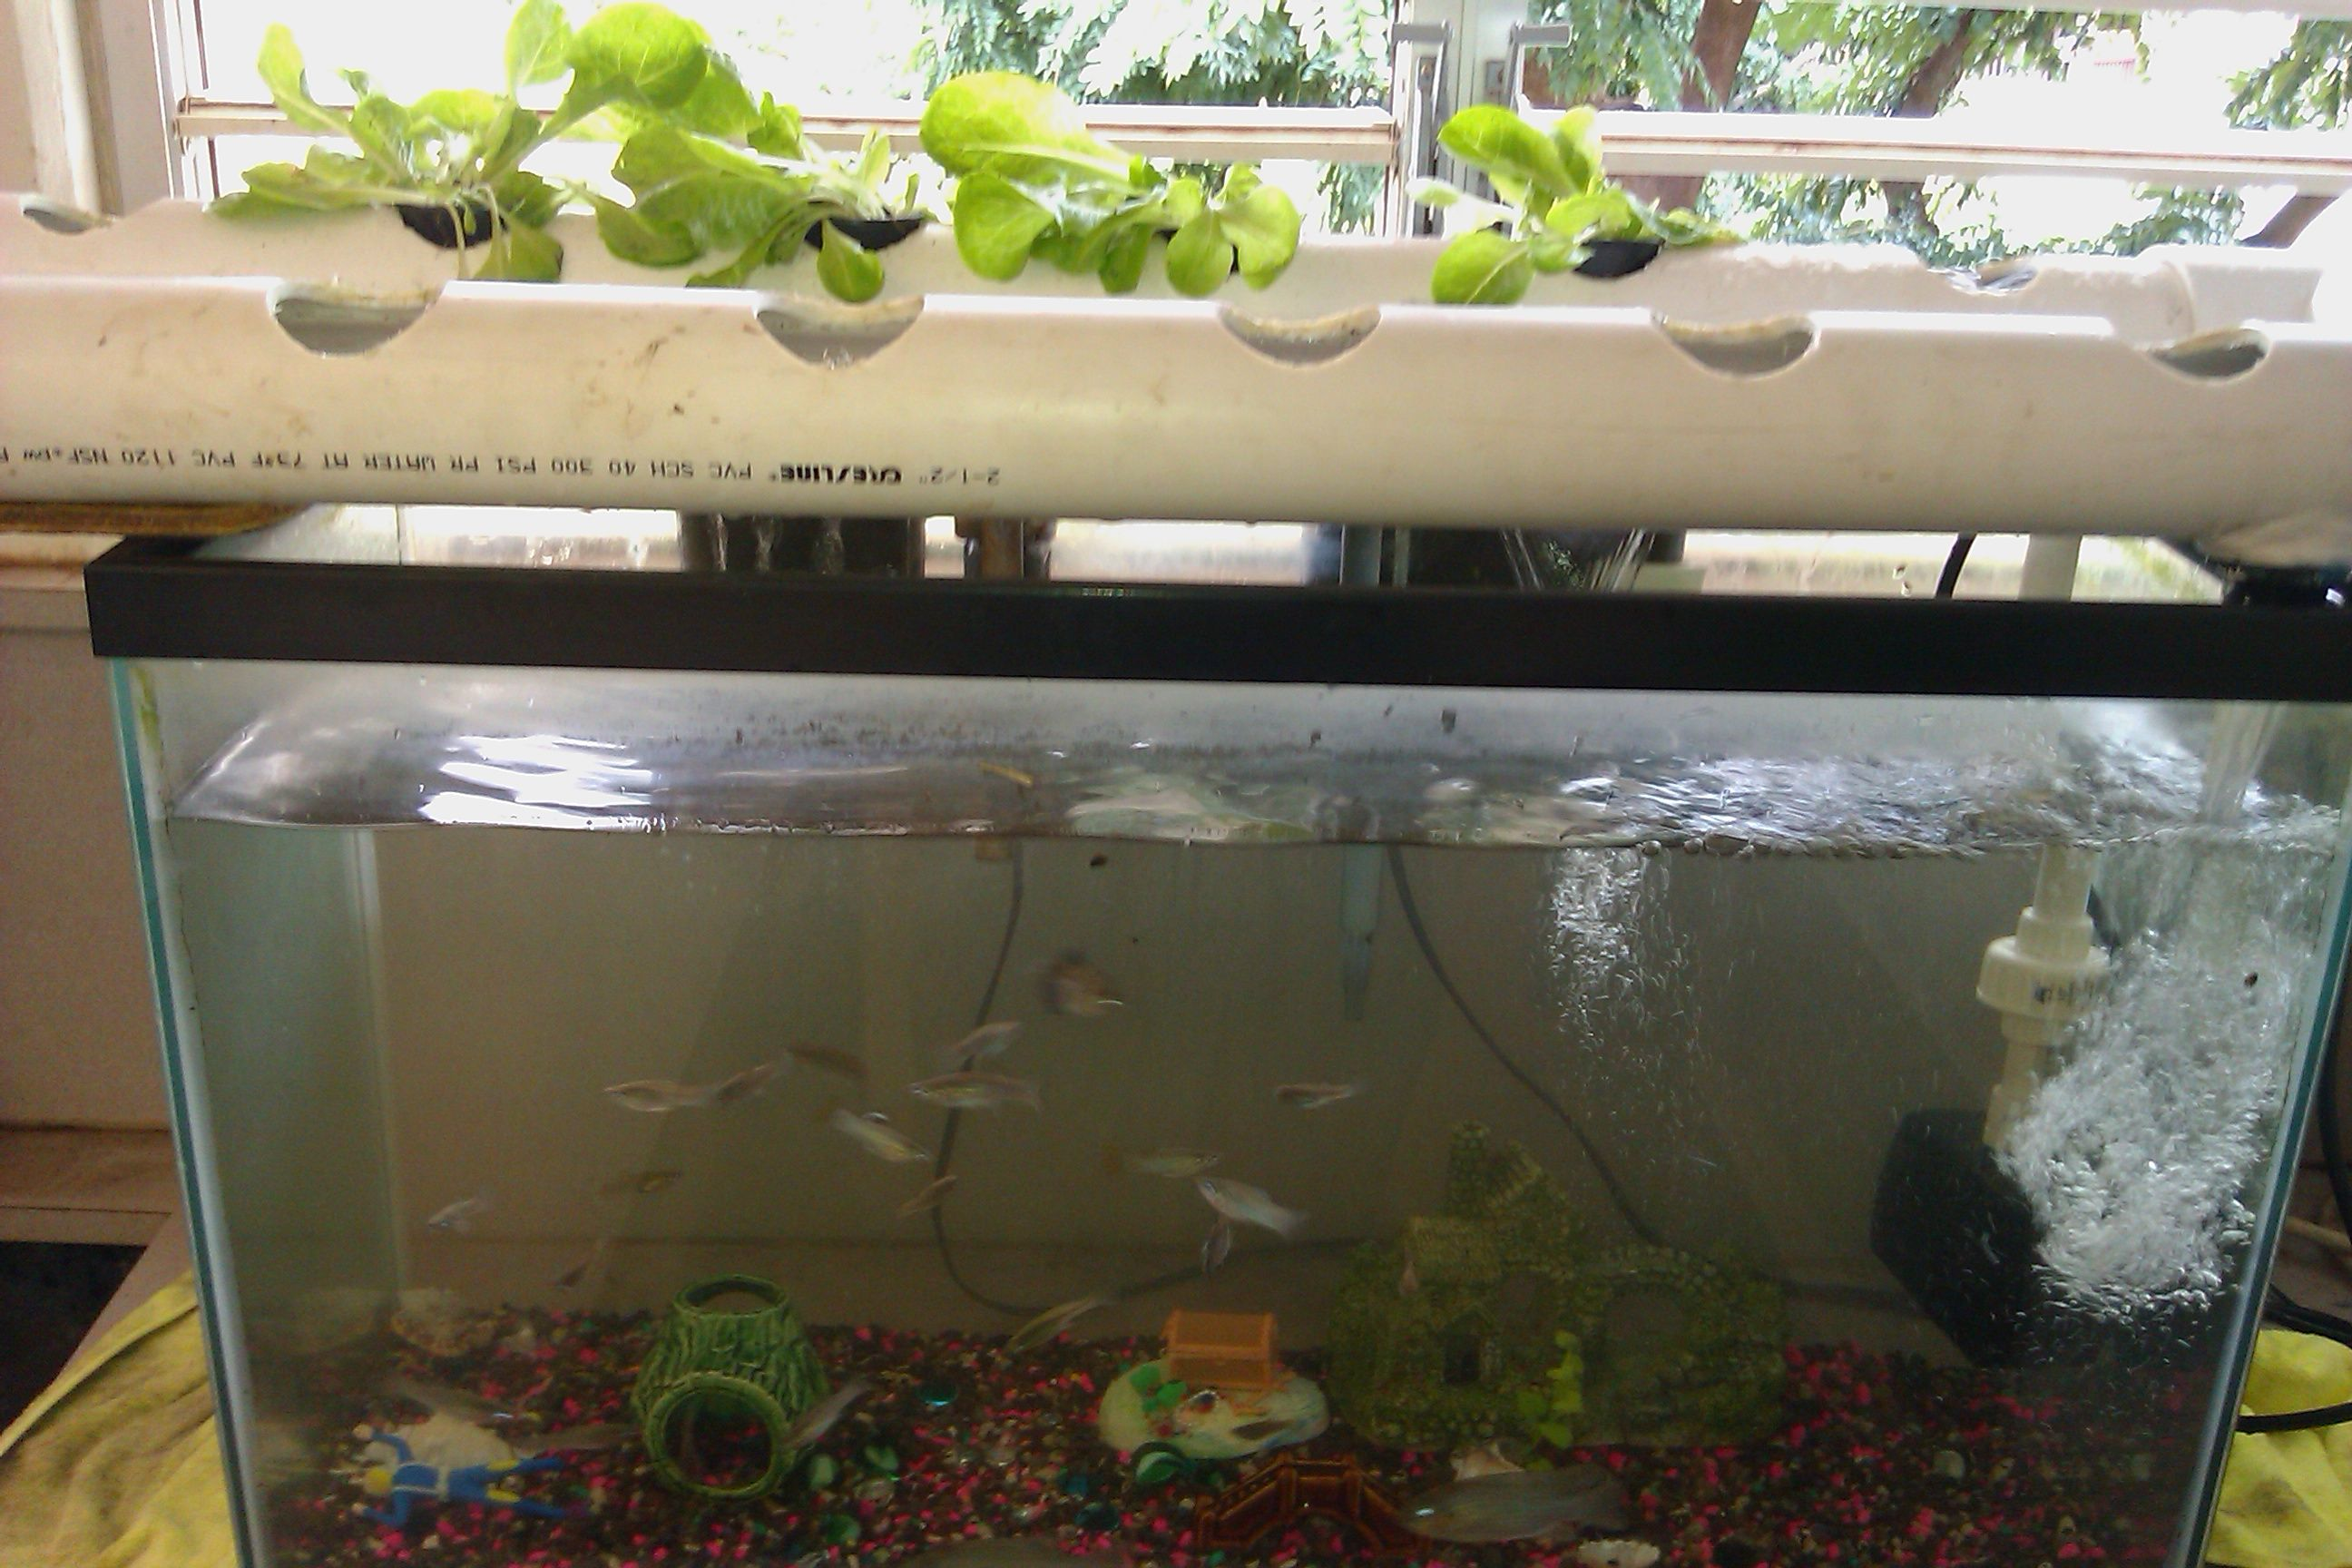 Desktop aquaponics aquarium setup stem intercommunity for Fish for aquaponics